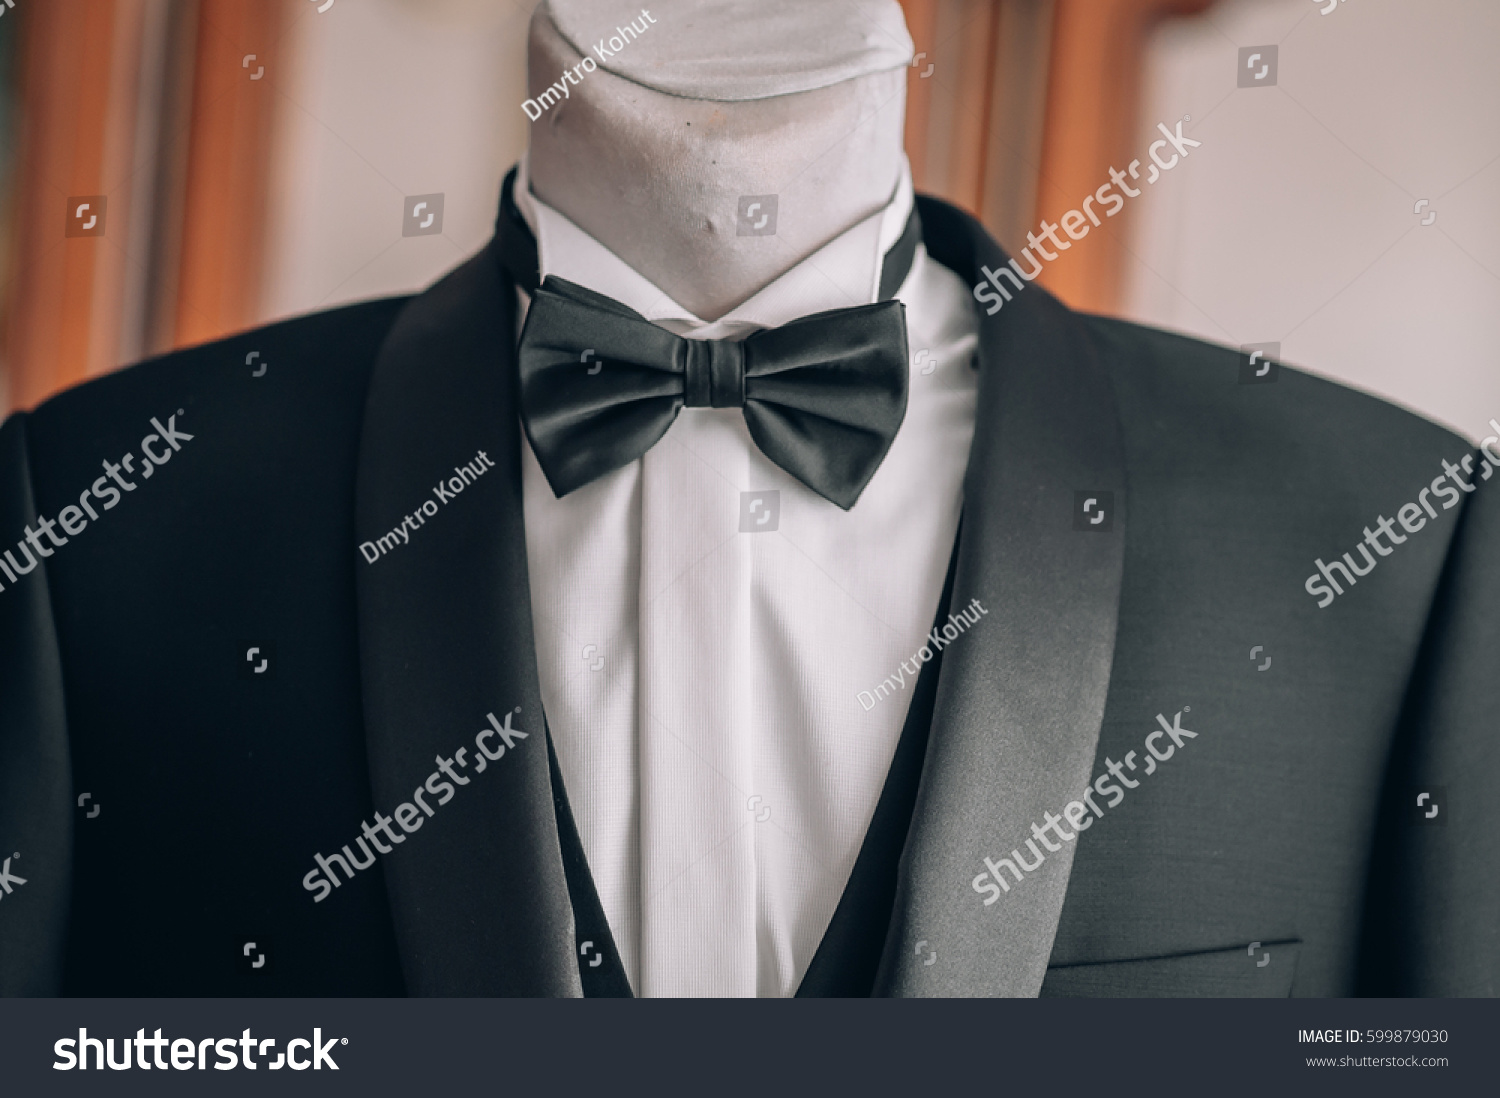 02bac544953 tuxedo on a mannequin in detail